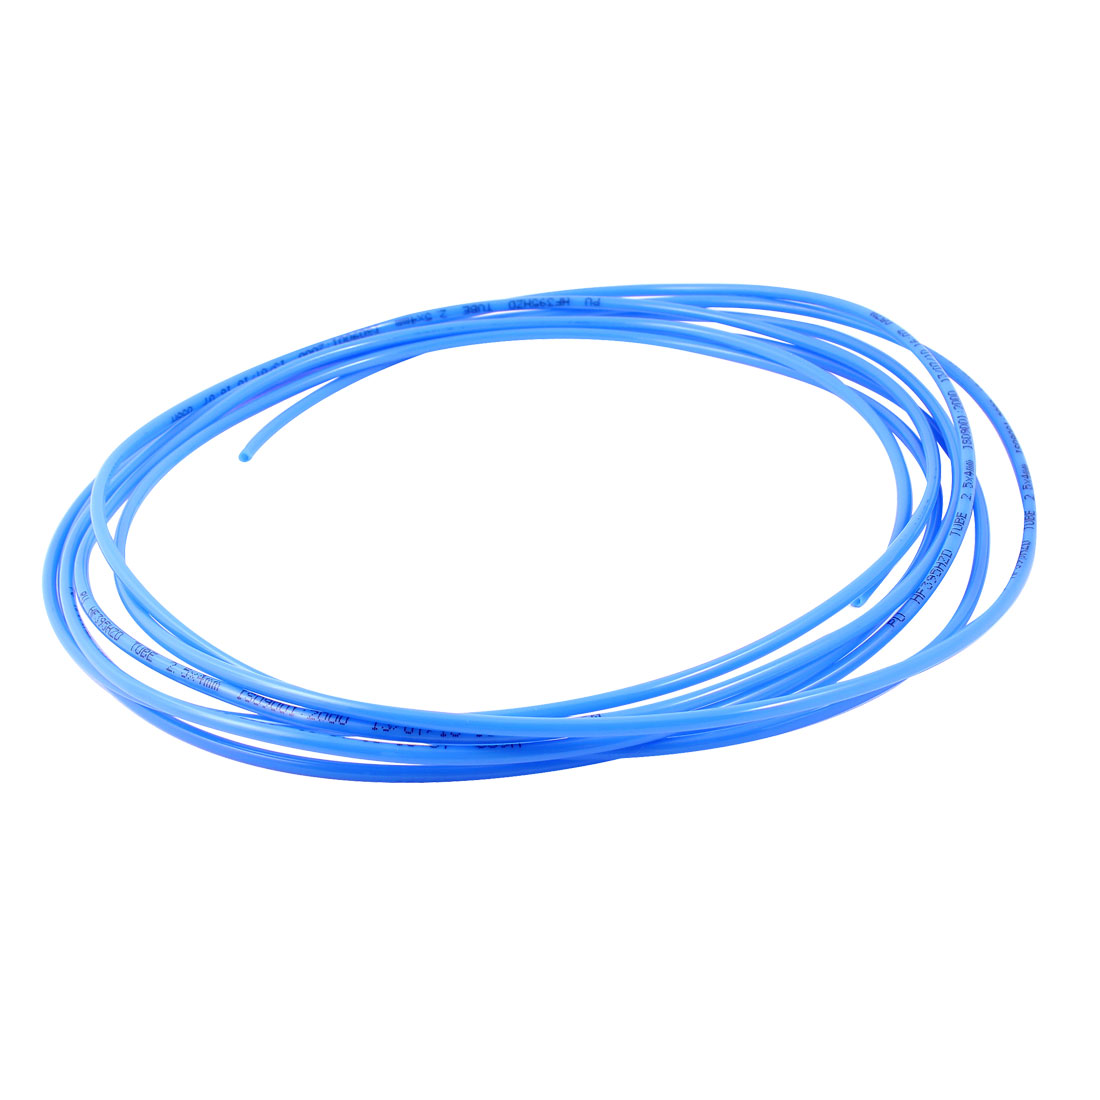 5M 16Ft Length 4mm x 2.5mm Size Pneumatic Air PU Hose Pipe Tube Blue